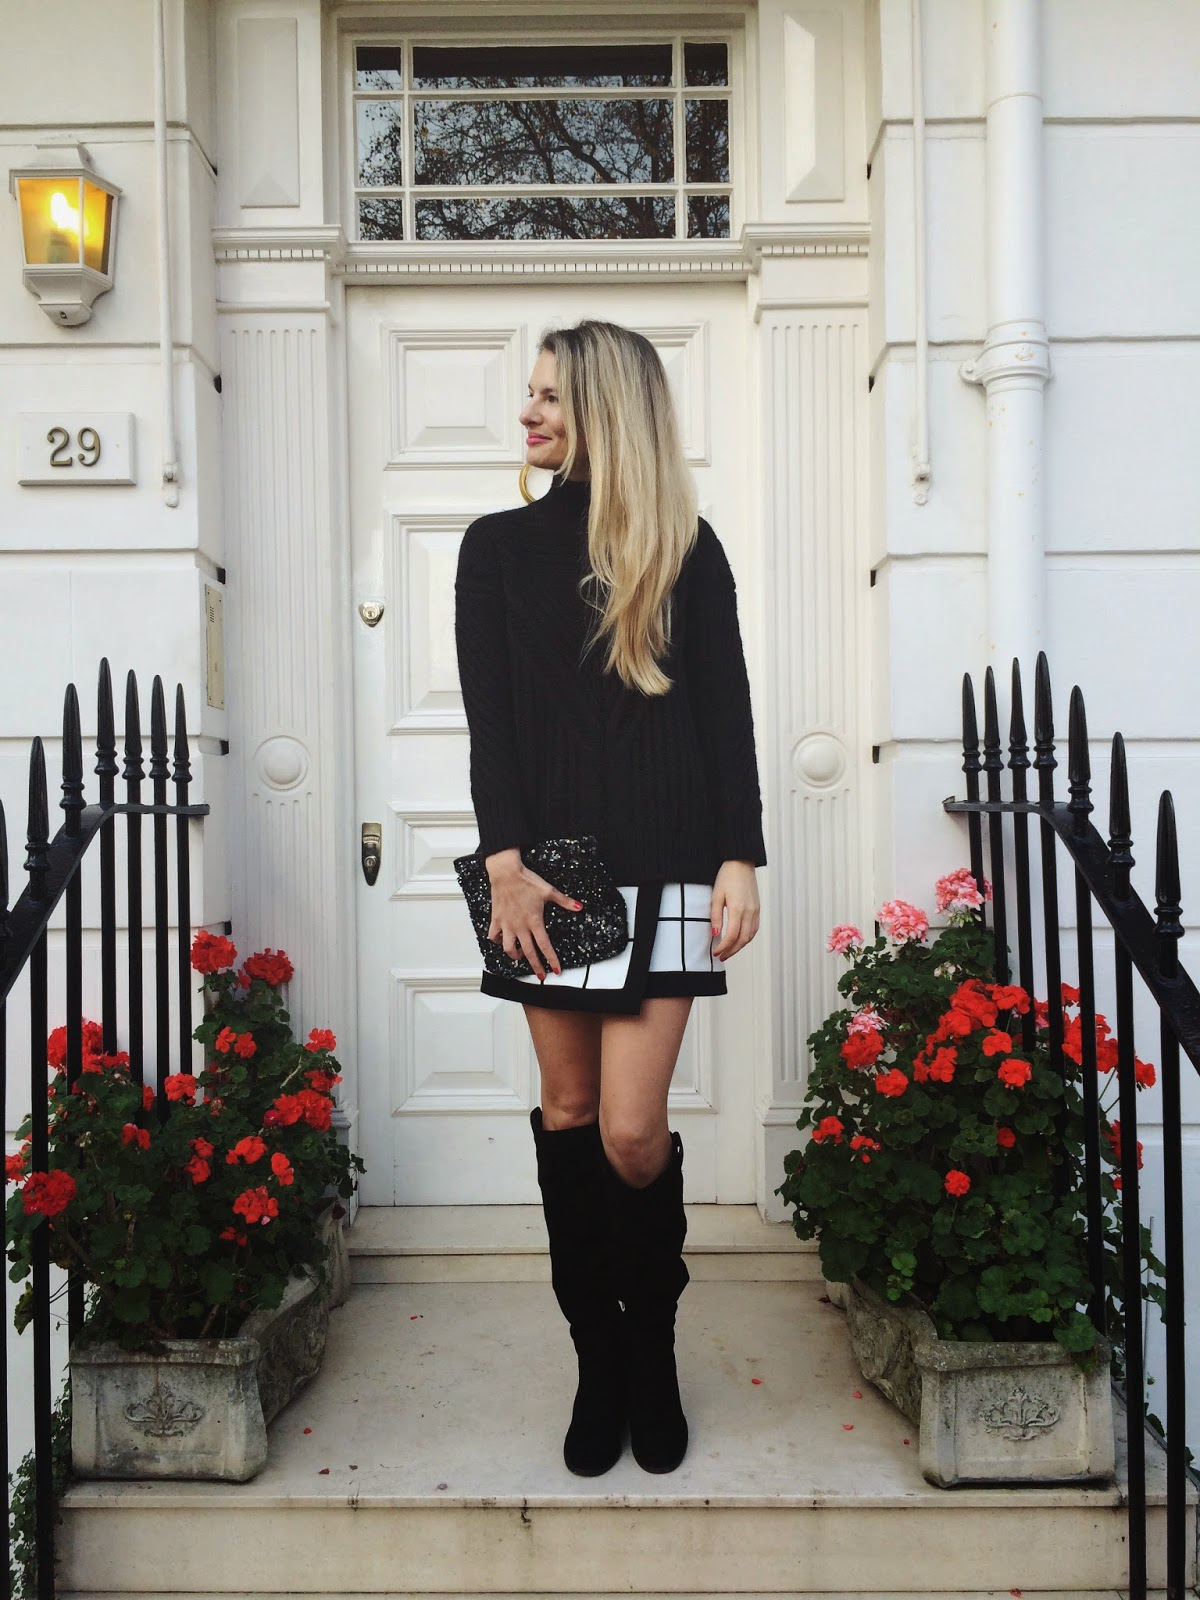 Karen millen wrap skirt, street style, london blogger, london street style, window pane print, over the knee boots, asos cable knit jumper, sequin clutch